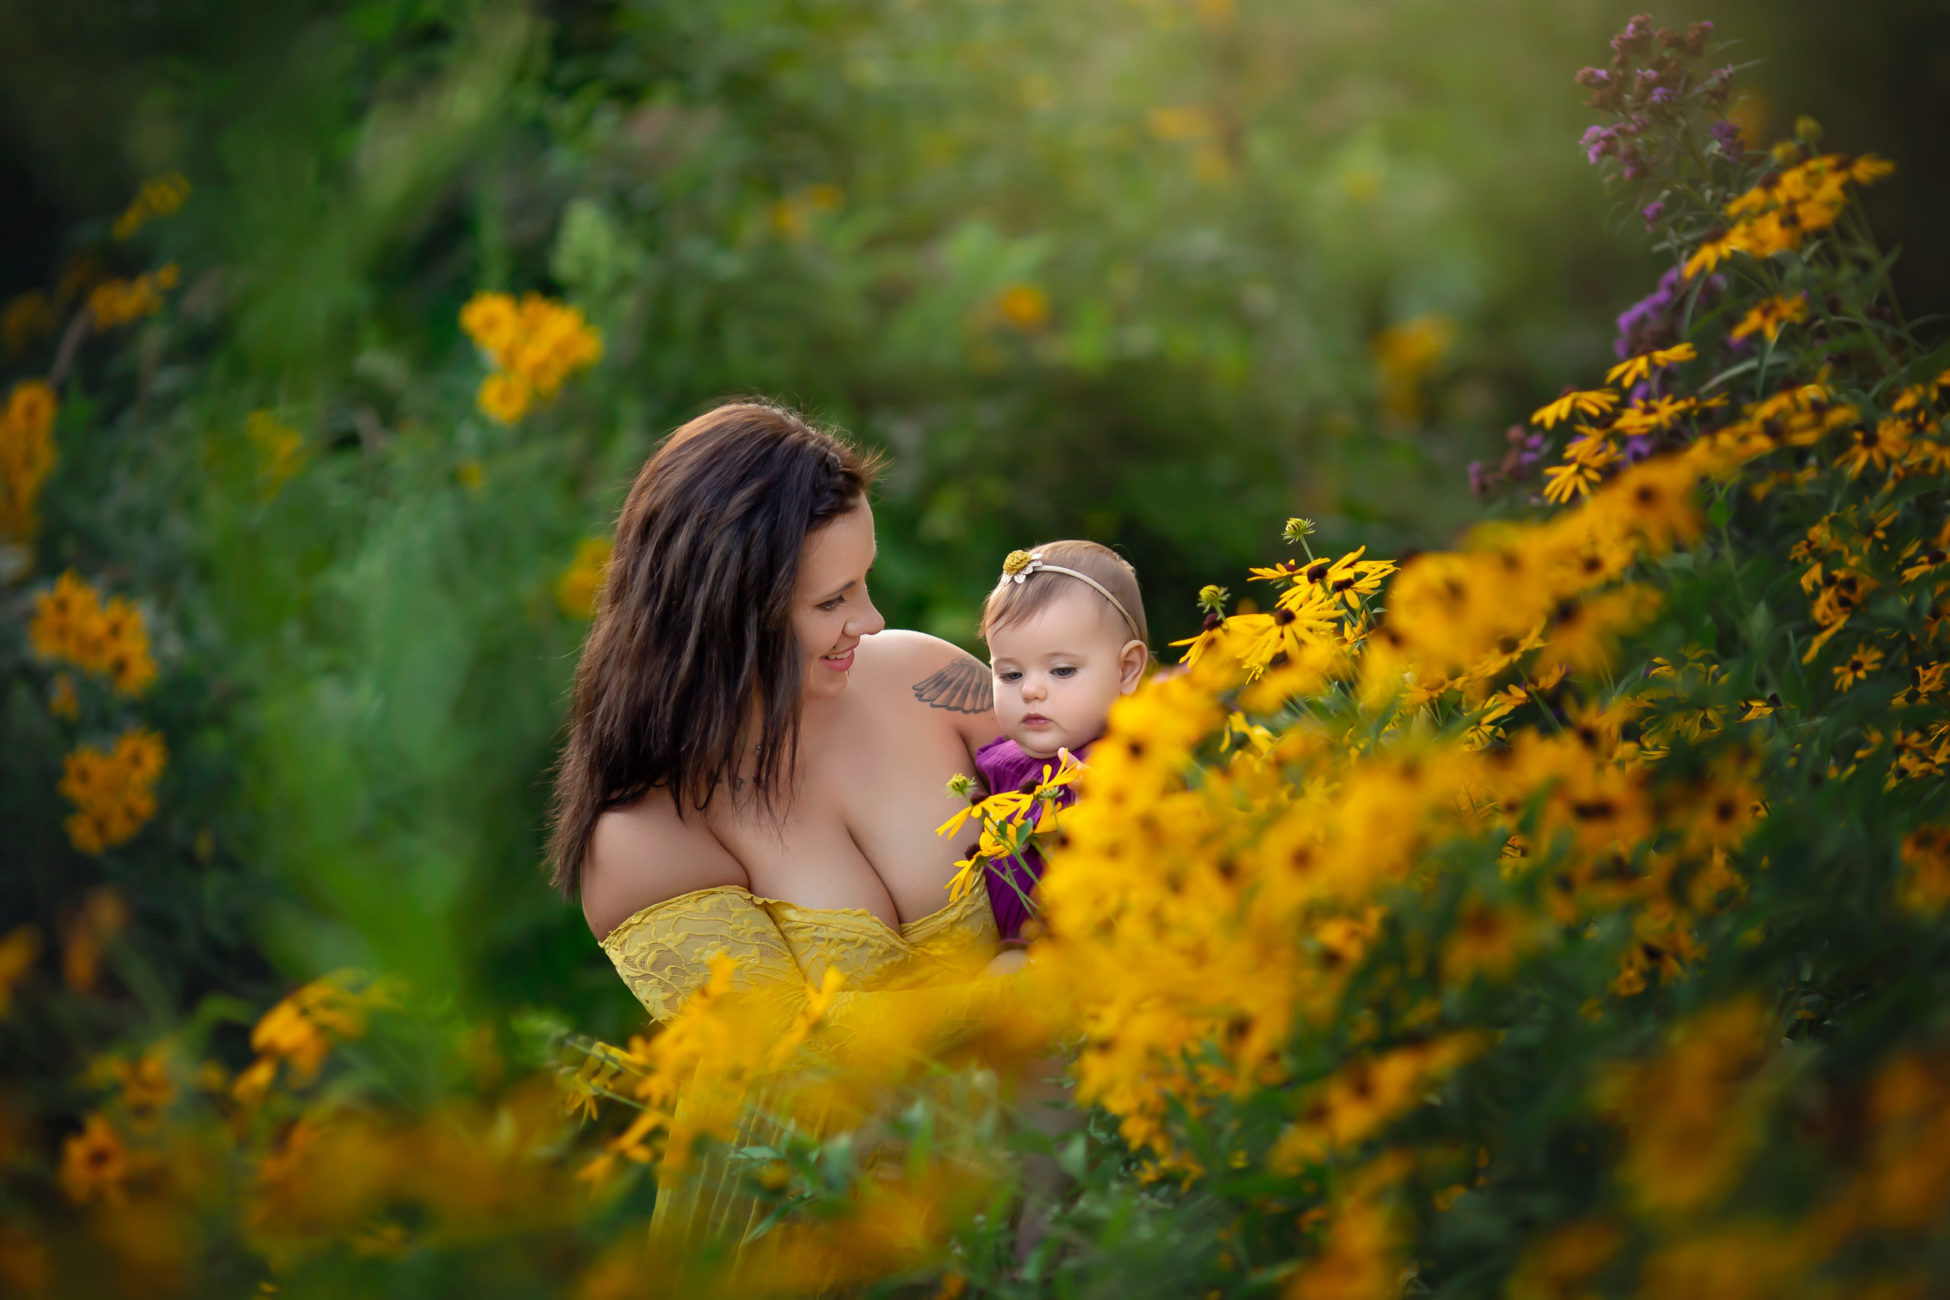 Meet Ely IA Photographer Michelle Zumbach who specializes in maternity, newborn & baby photography available in Fairfax, Cedar Rapids and Coralville, IA.